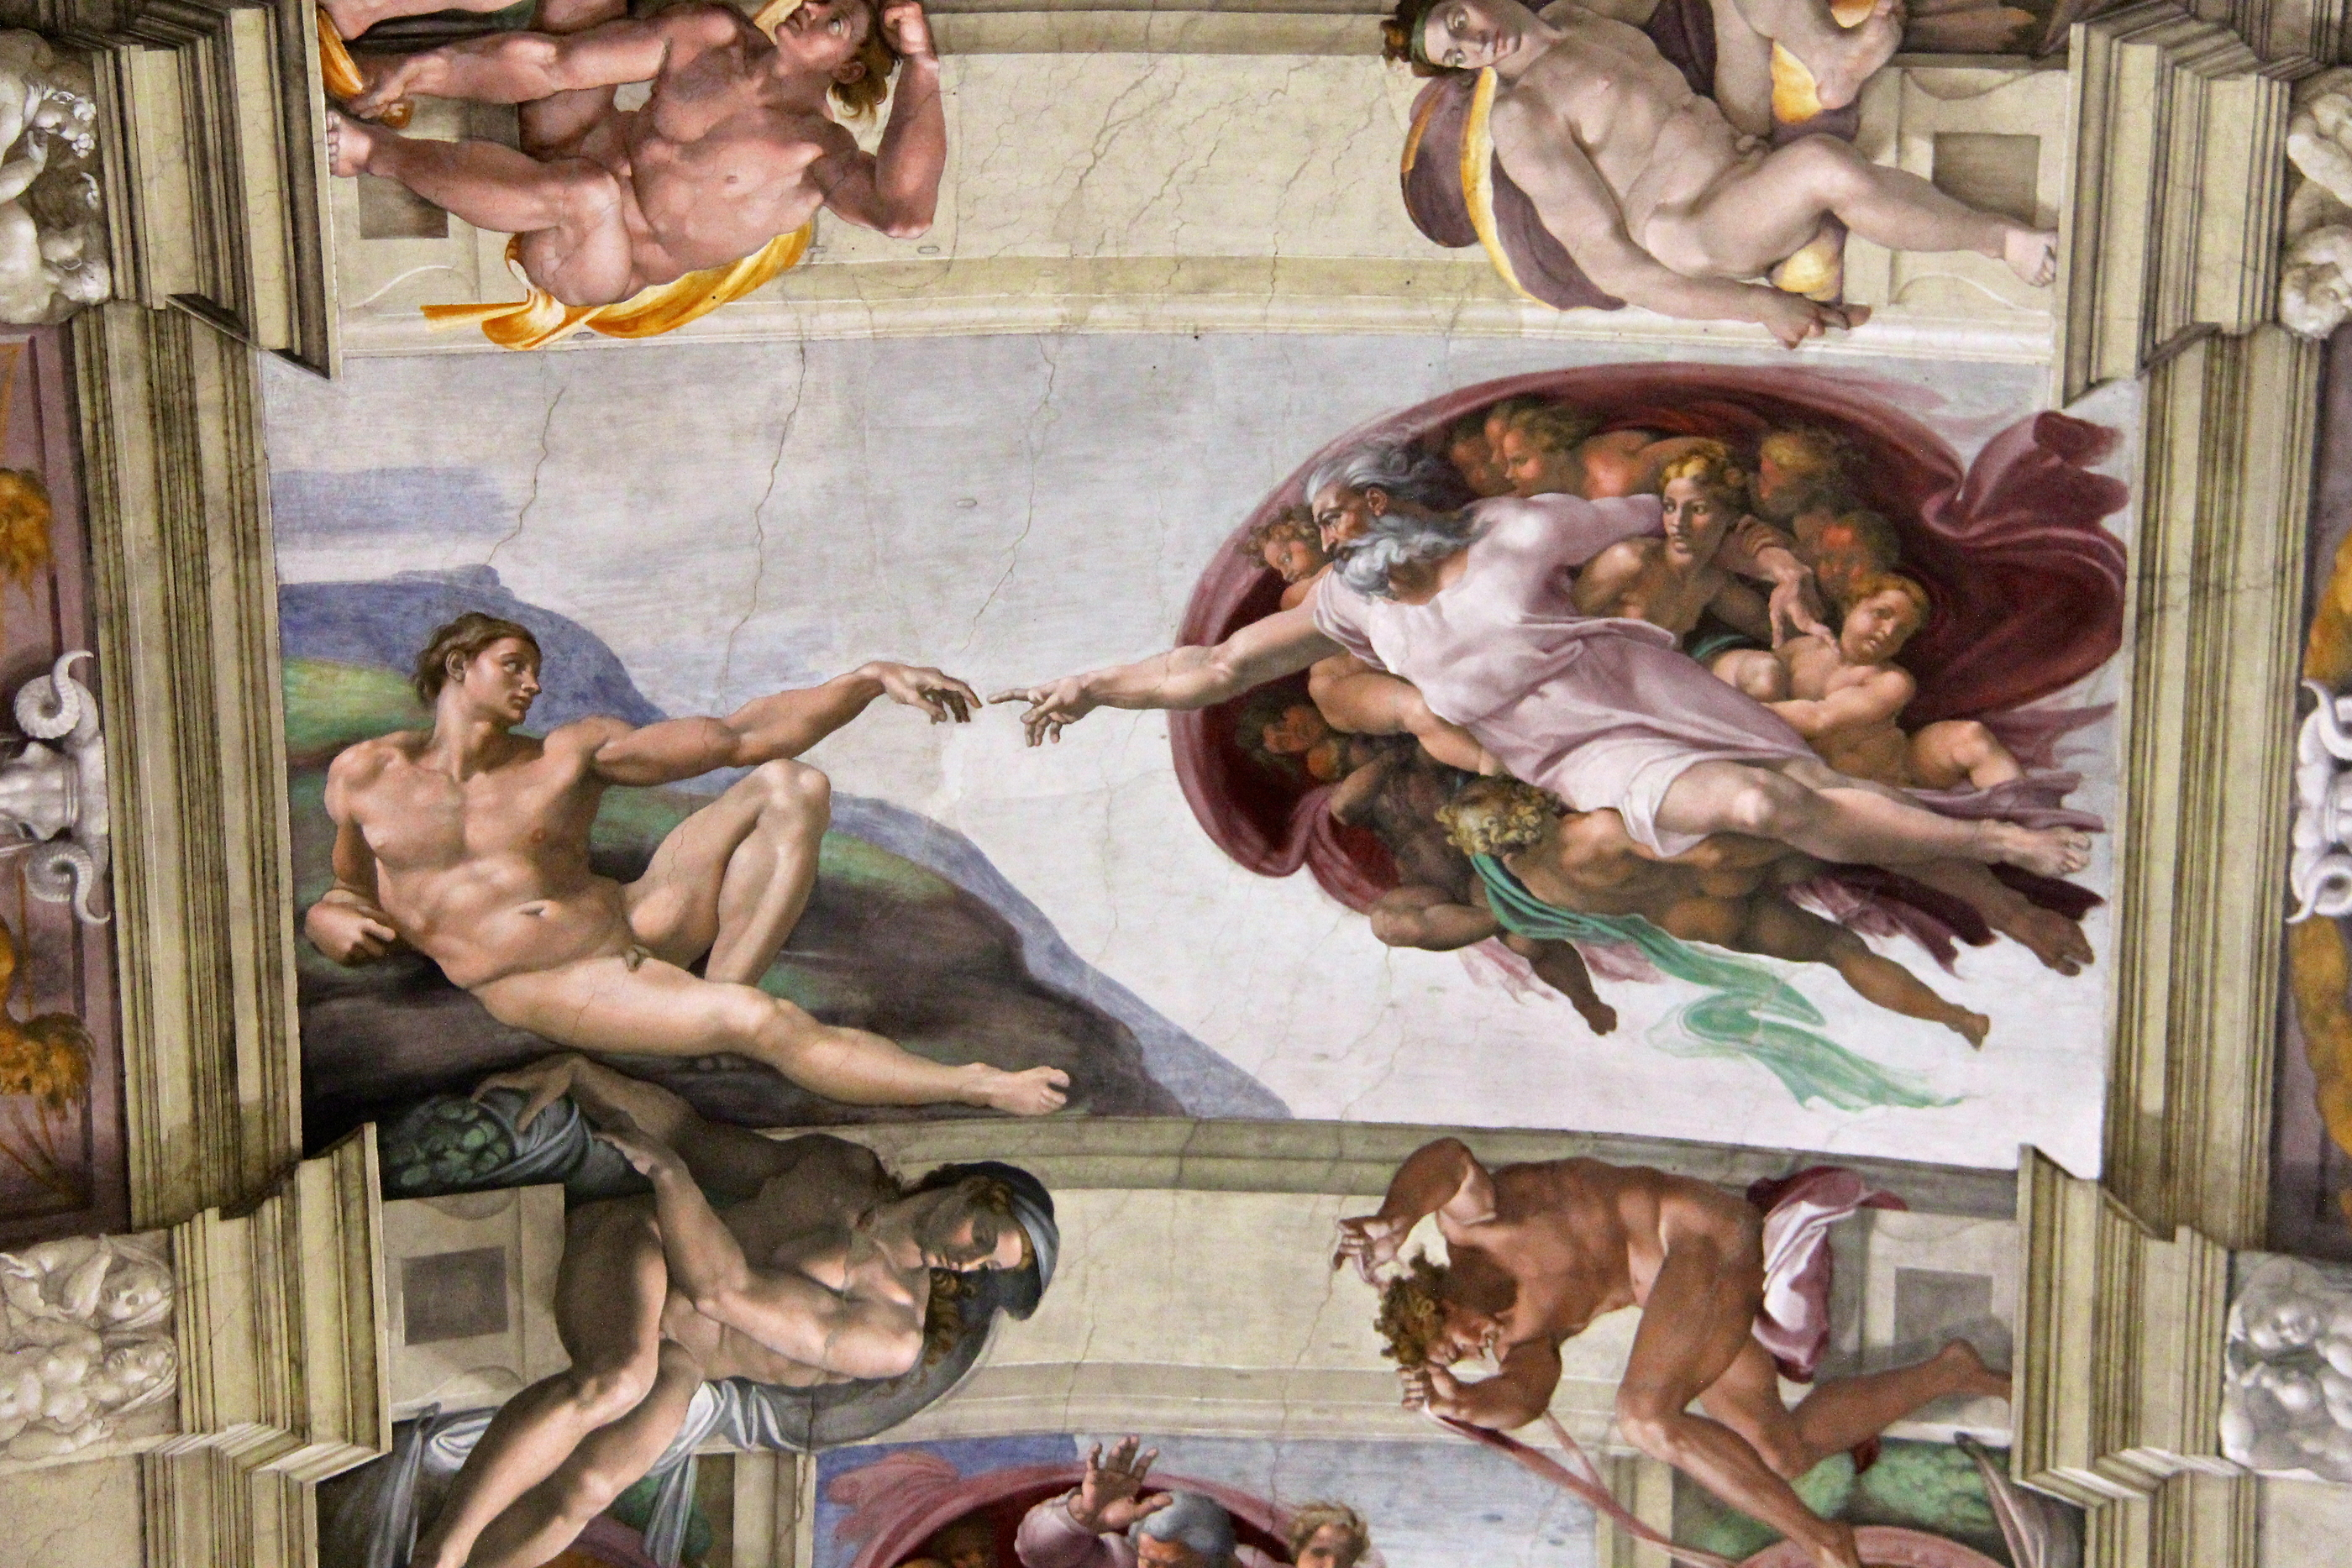 image of God and Adam on the Sistine Chapel by Michelangelo